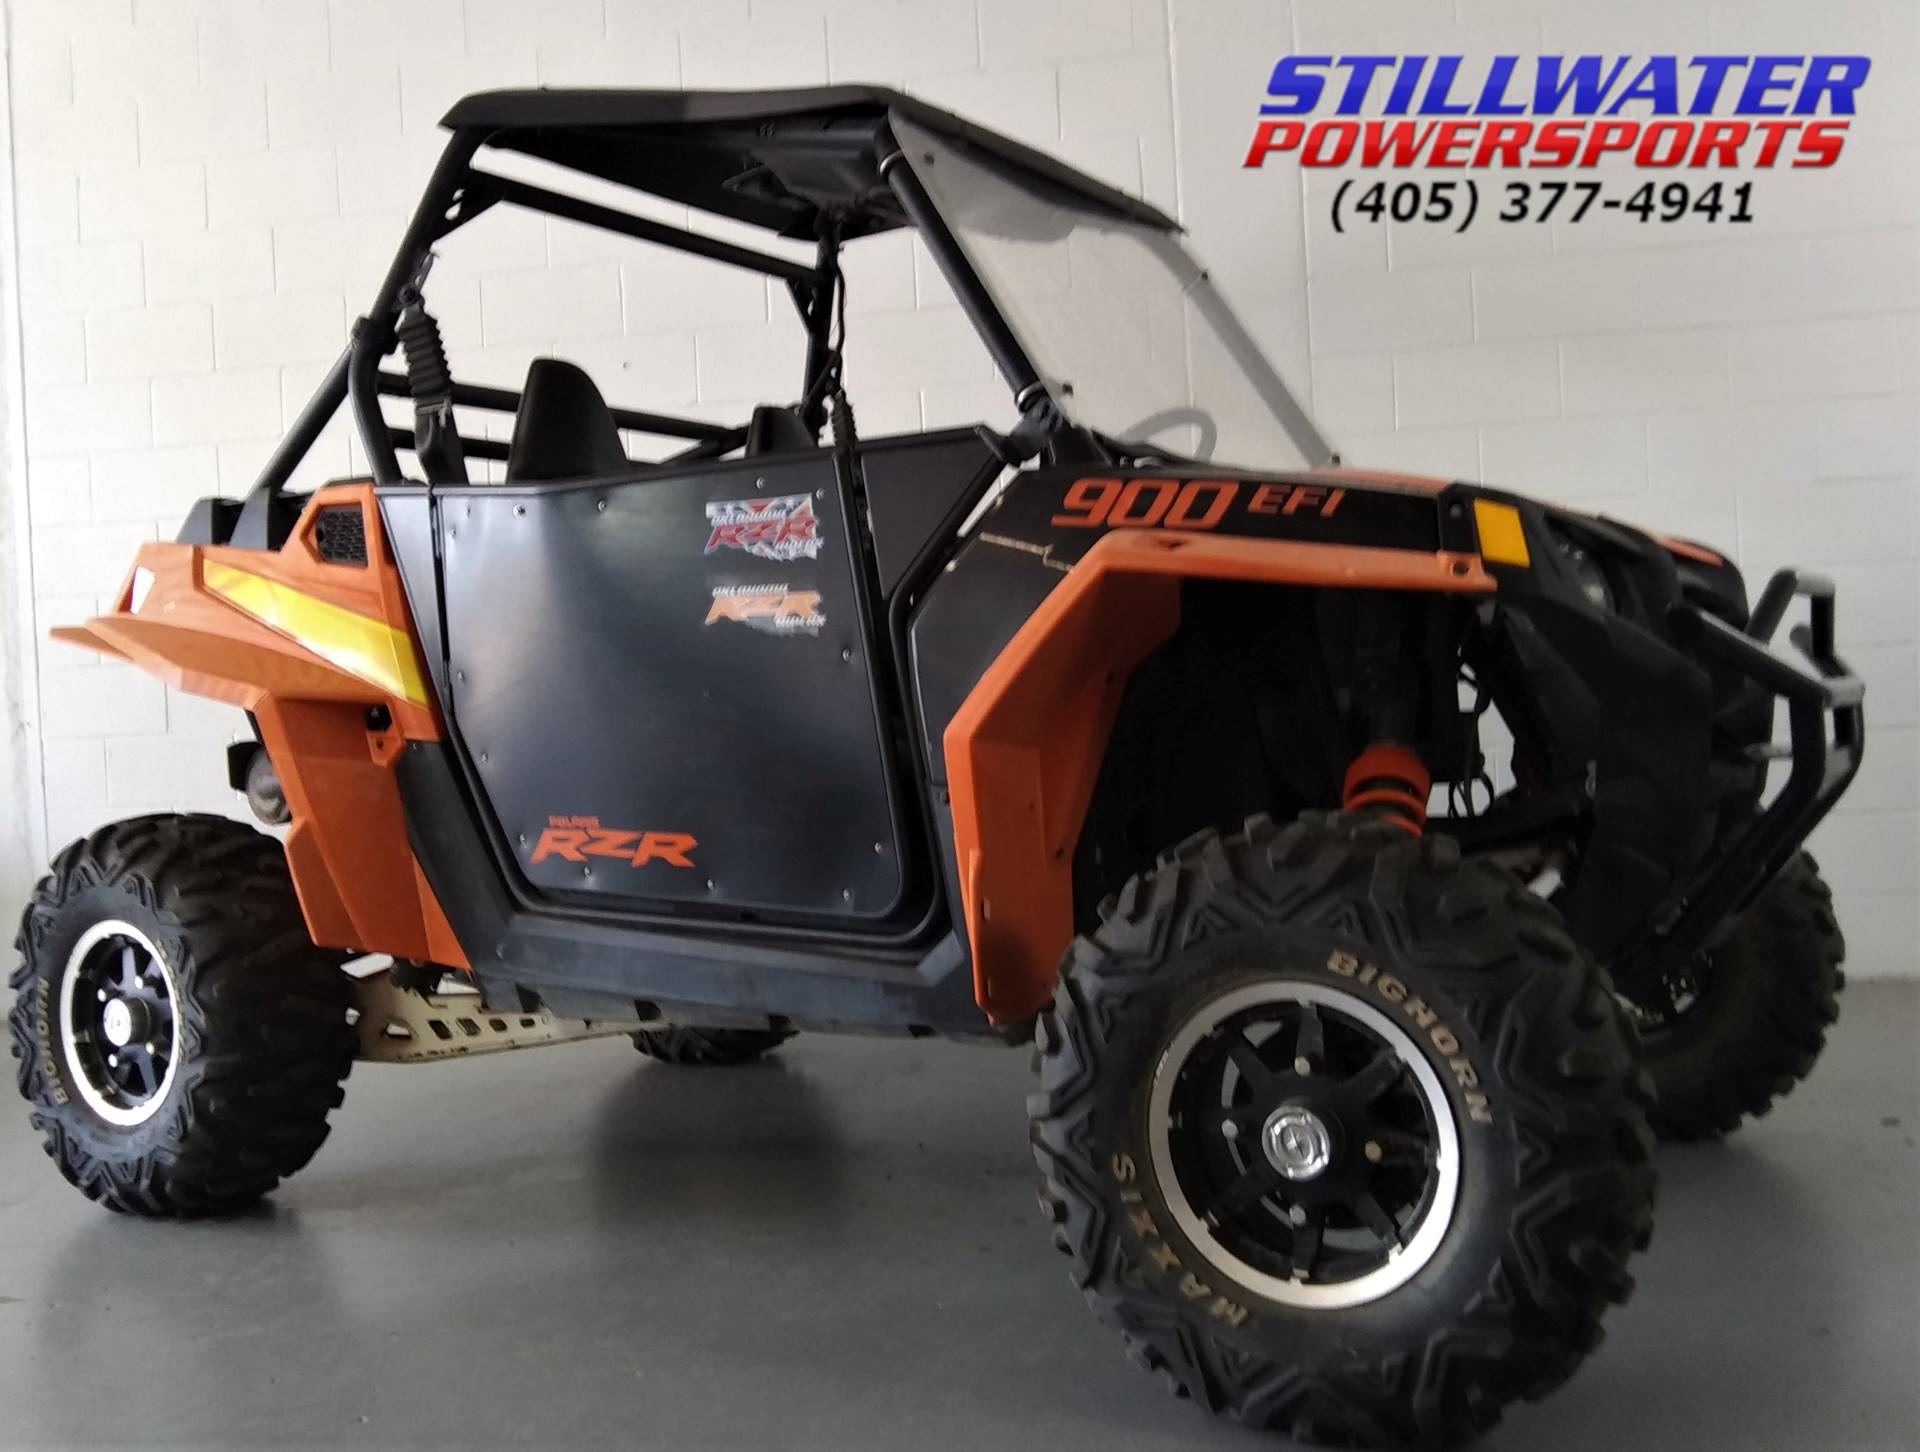 2012 Polaris Ranger RZR® XP 900 LE in Stillwater, Oklahoma - Photo 2